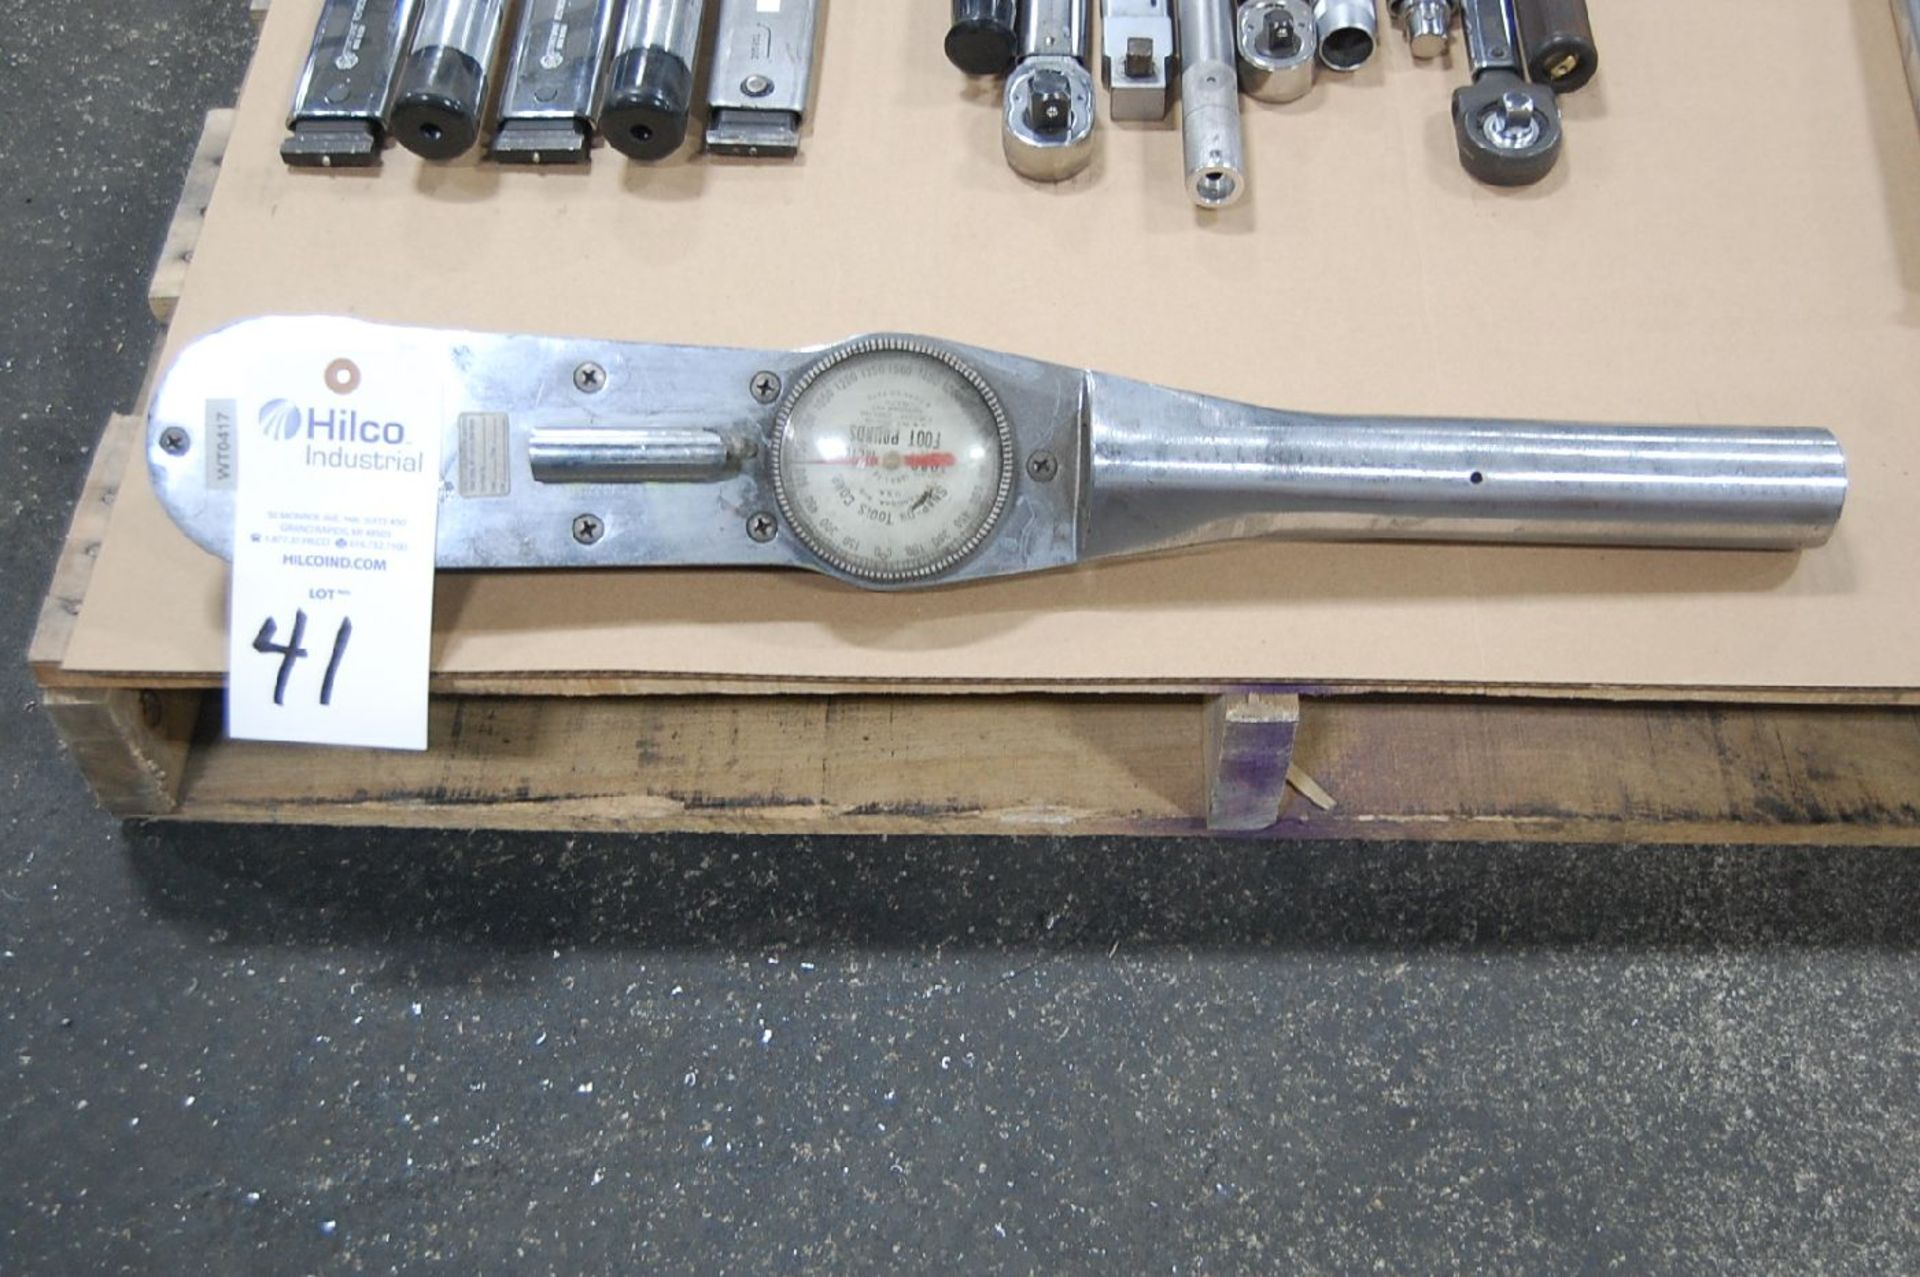 Lot 41 - Snap-On Model 1503-L-14 1,500 Ft. Lb. Dial Type Torque Wrench